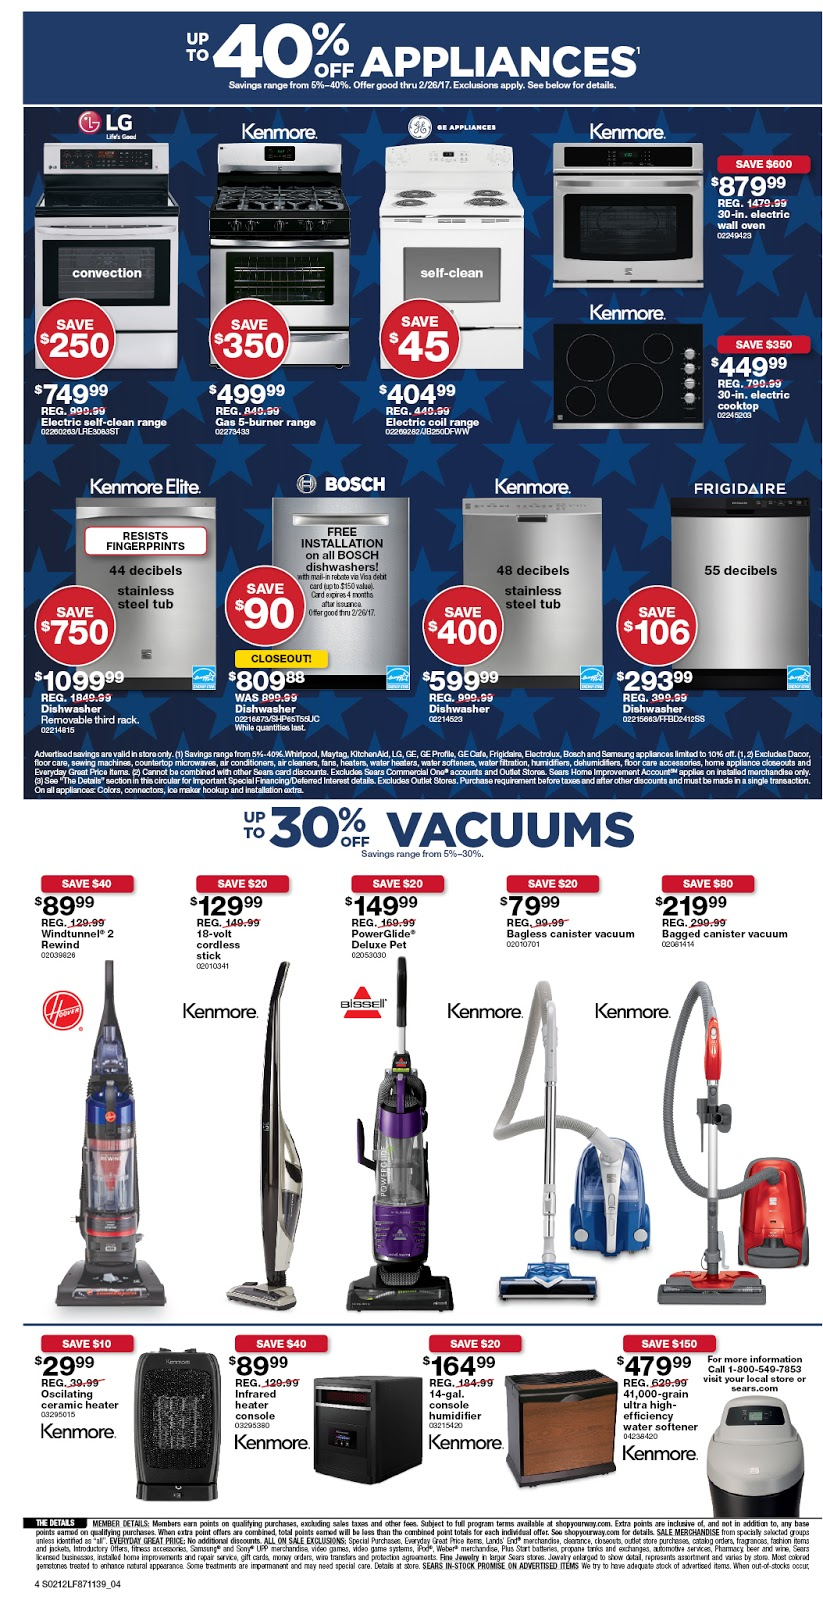 E Furniture Mart Coupons